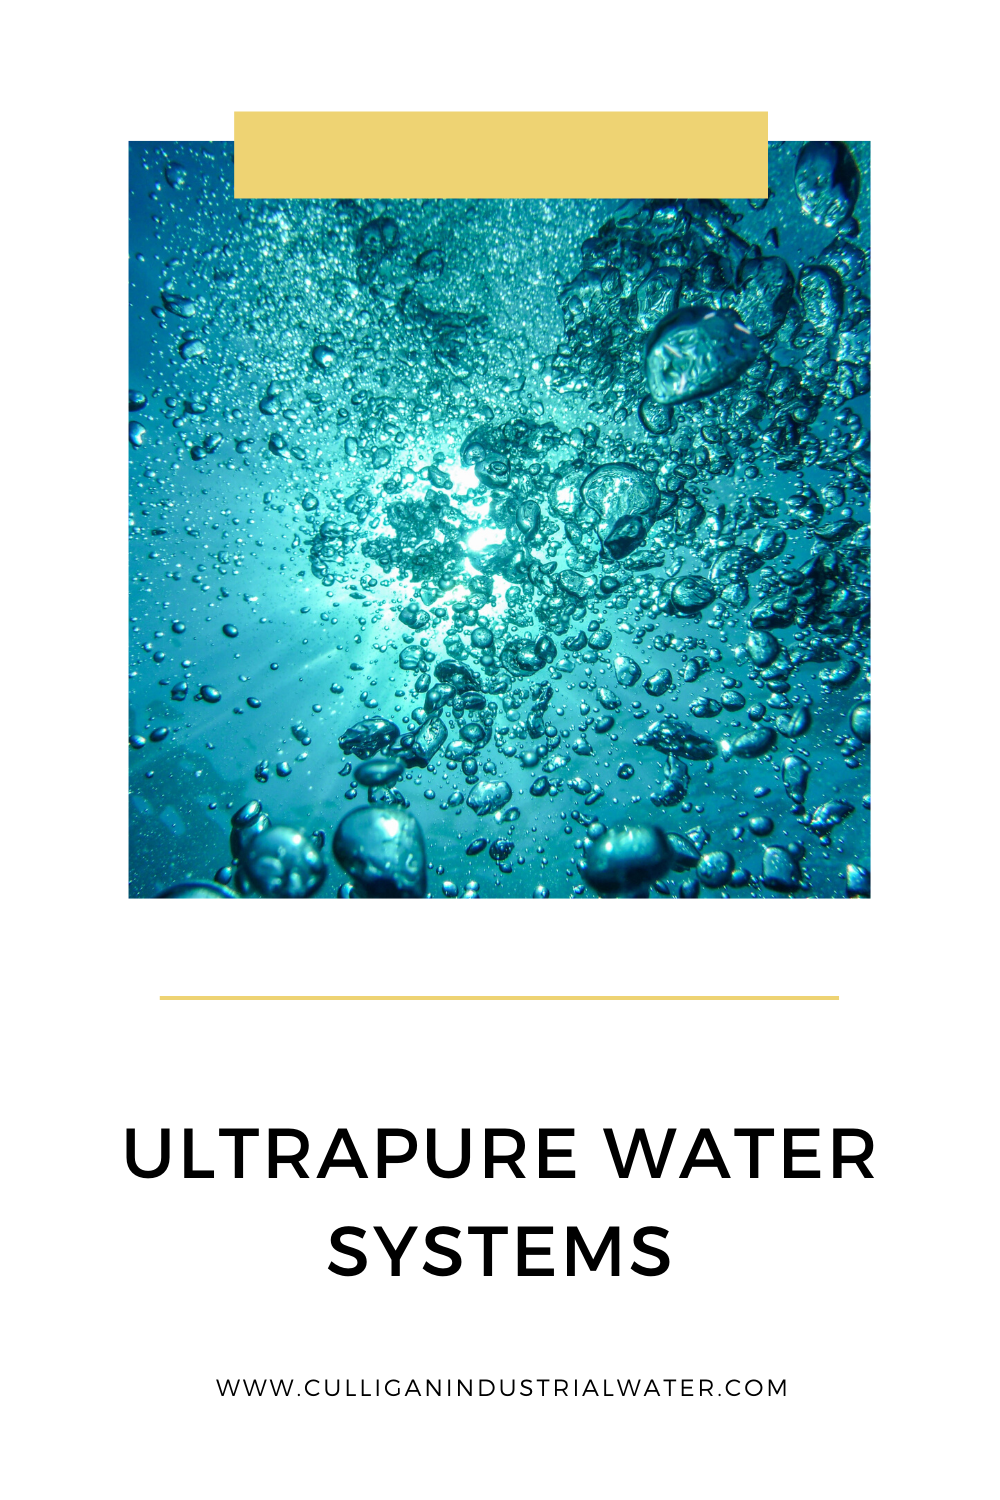 Ultrapure Water Systems In 2020 Water Systems Water Treatment System